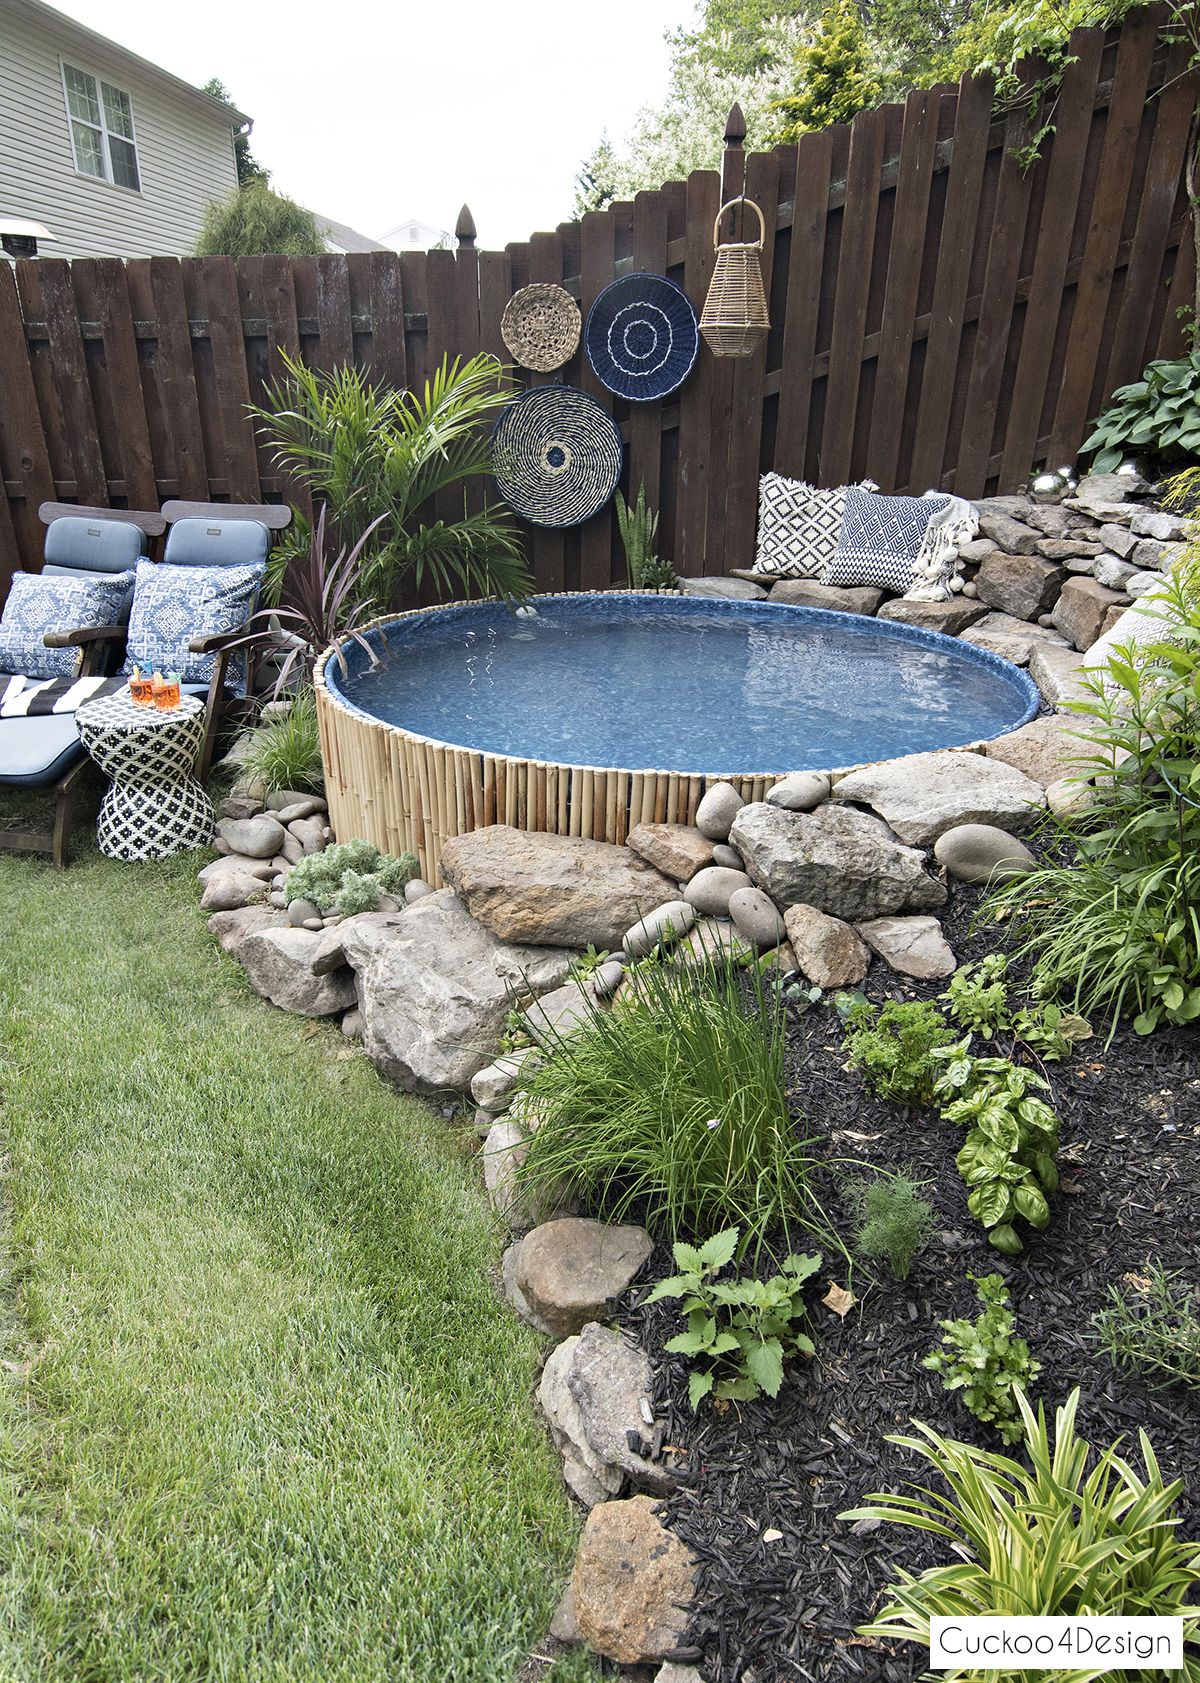 Photo of Our new stock tank swimming pool in our sloped yard | Cuckoo4Design